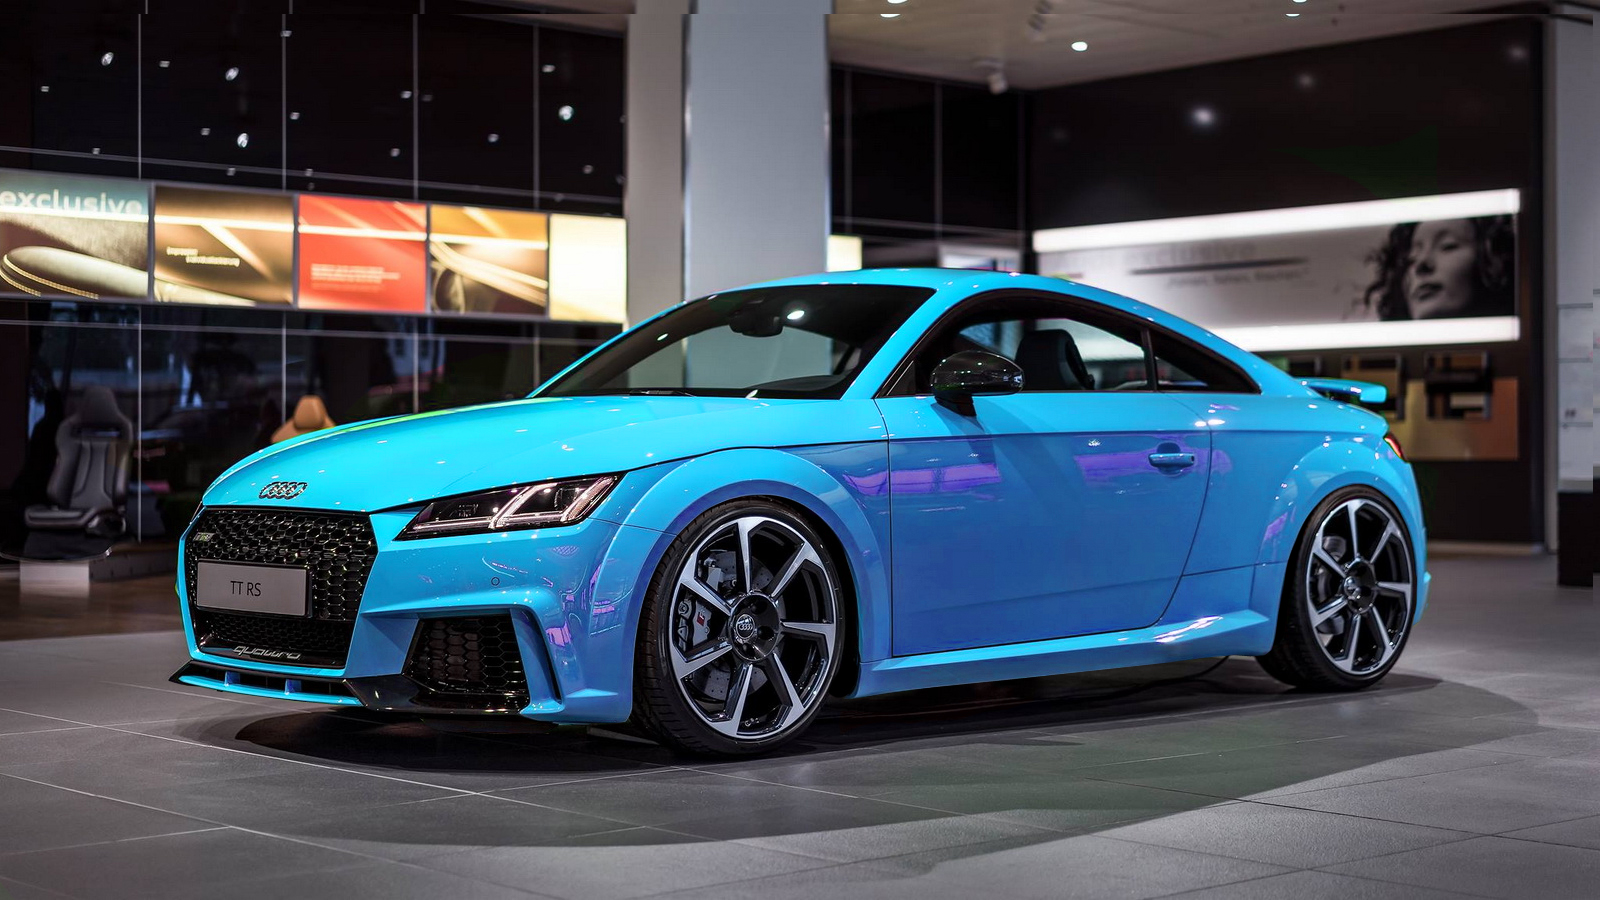 Help Me Pick The Color For My Tt Rs